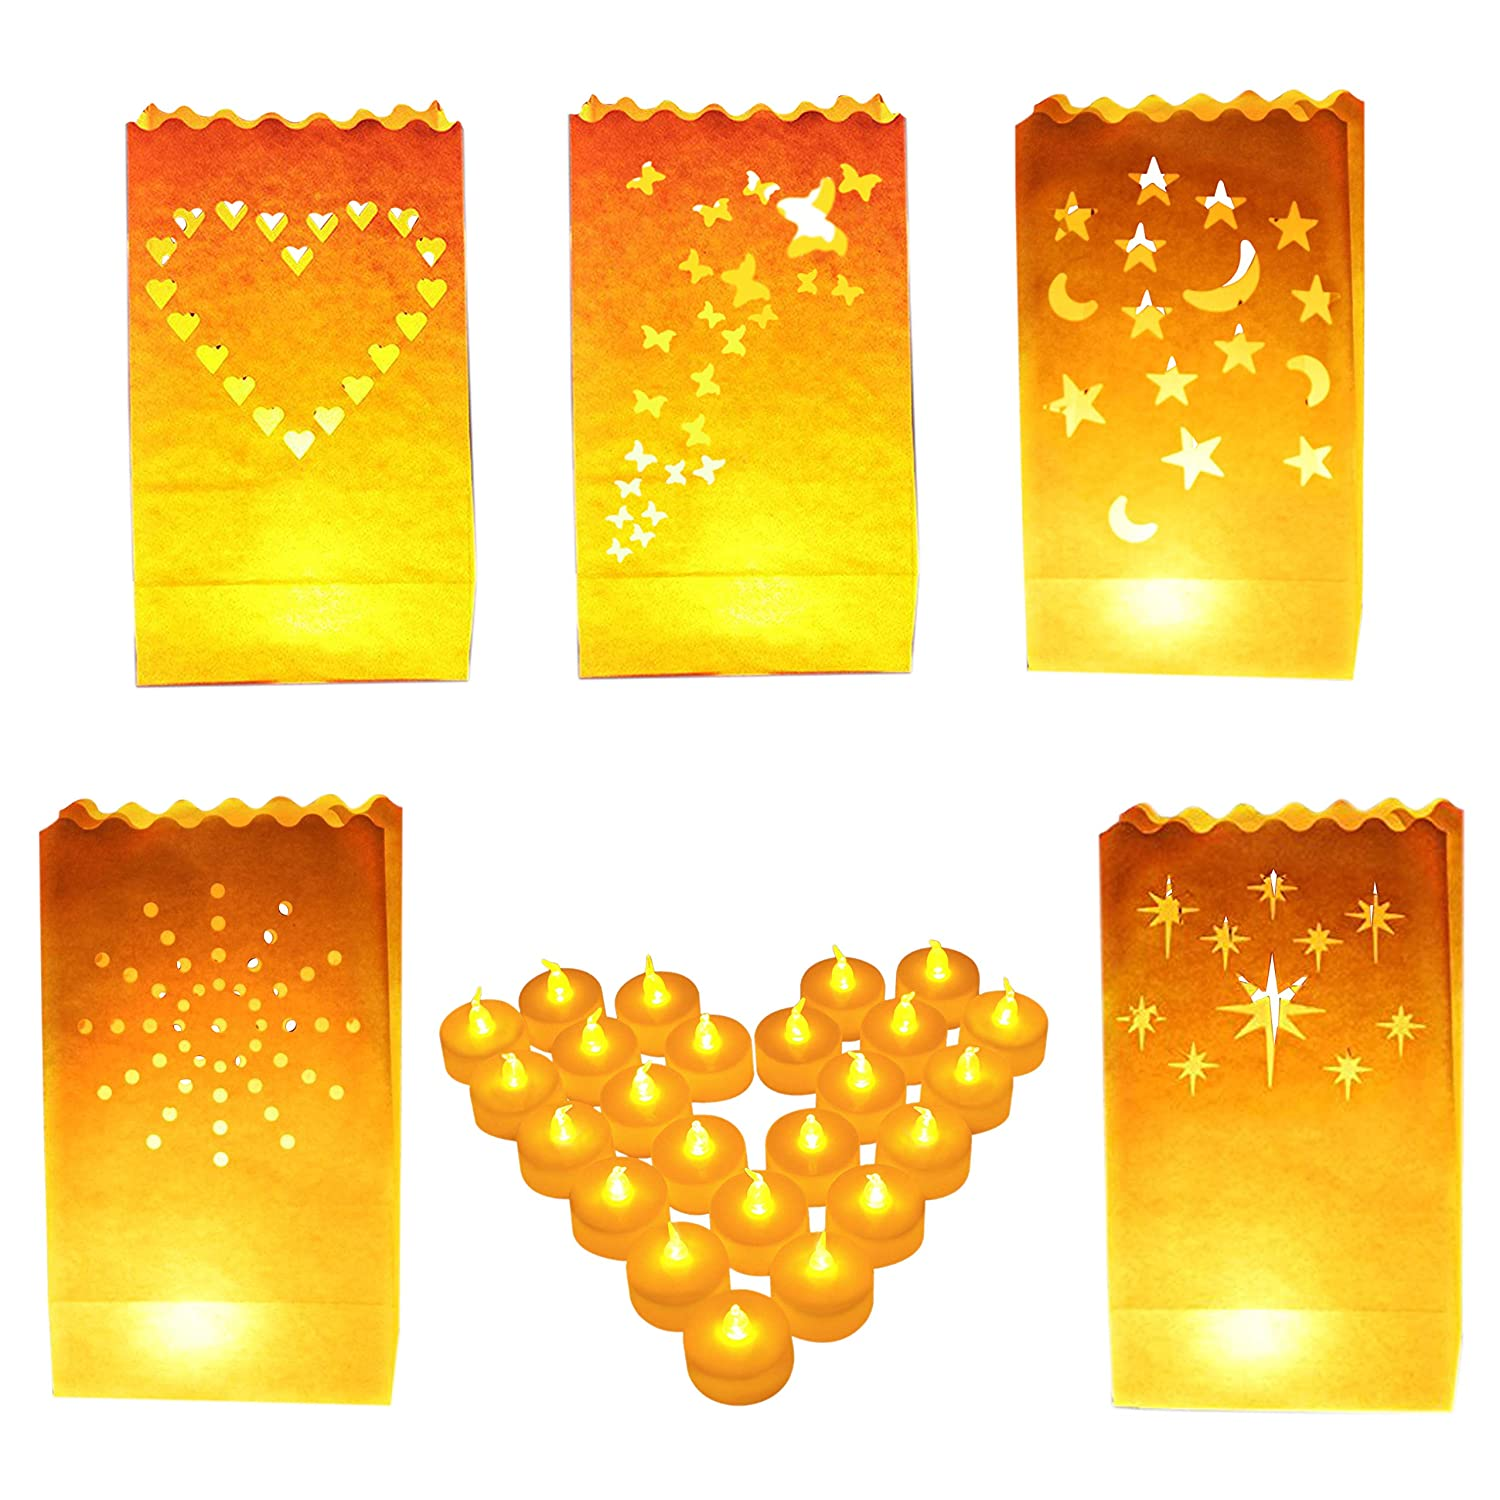 Luminary Bags - 50 Pack Candle Bags with Star, Heart, Dot, Moon and Butterfly Design with 50 Tea Lights Candle - Decorative White Paper Candle Bags Perfect for Indoor and Outdoor Use Kurtzy CB-523